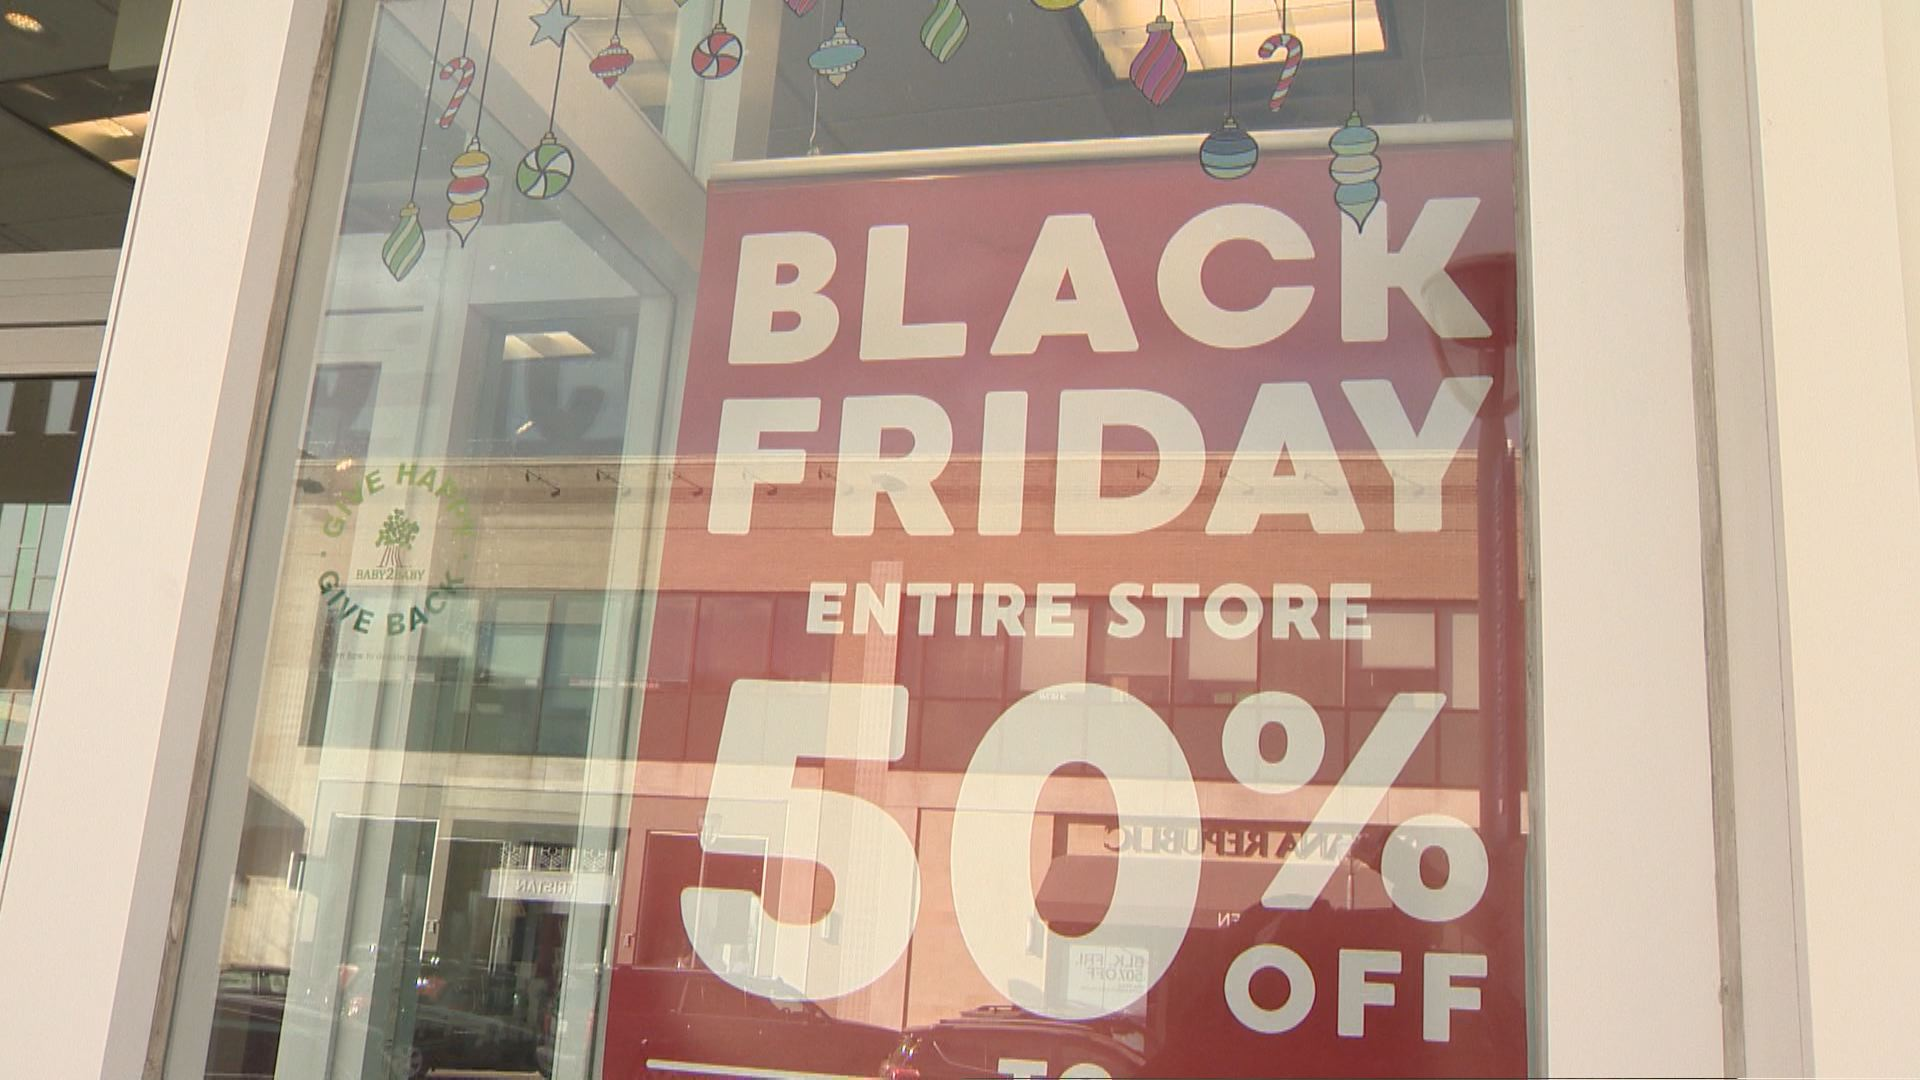 Black Friday Expected to Be Busiest Shopping Day of 2018